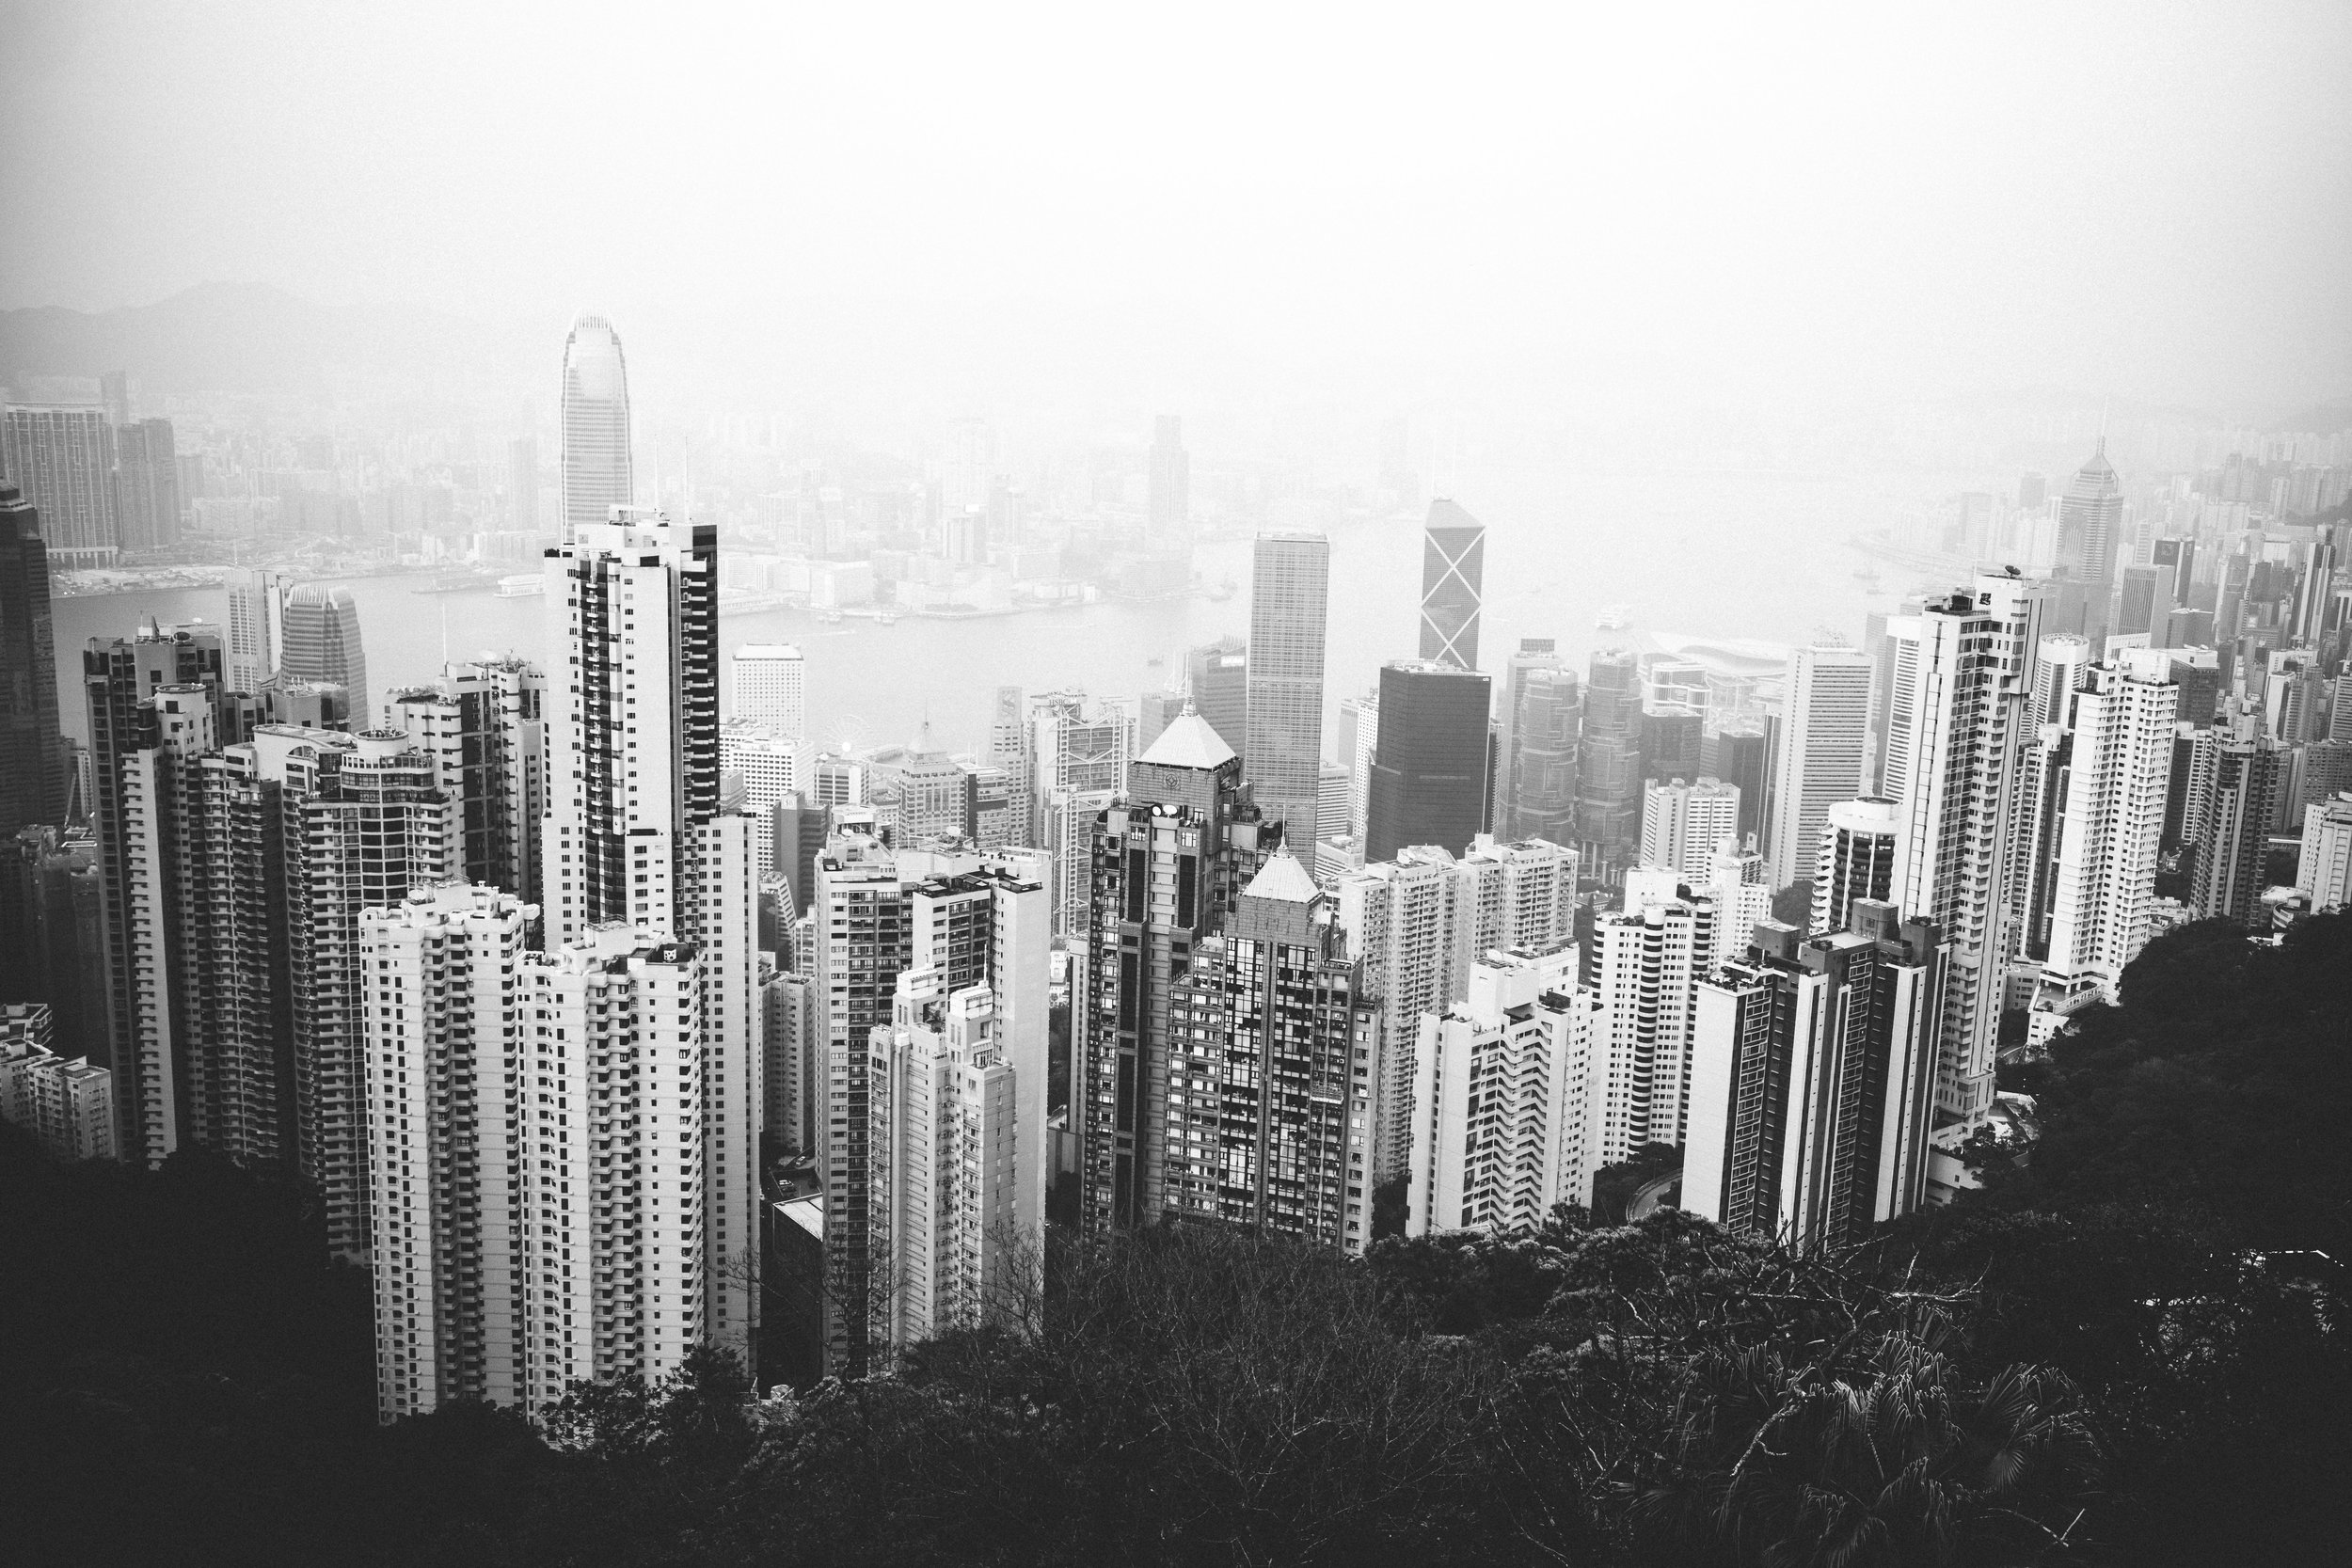 The view from Victoria Peak looking down onto Hong Kong and Victoria harbour - an incredible site